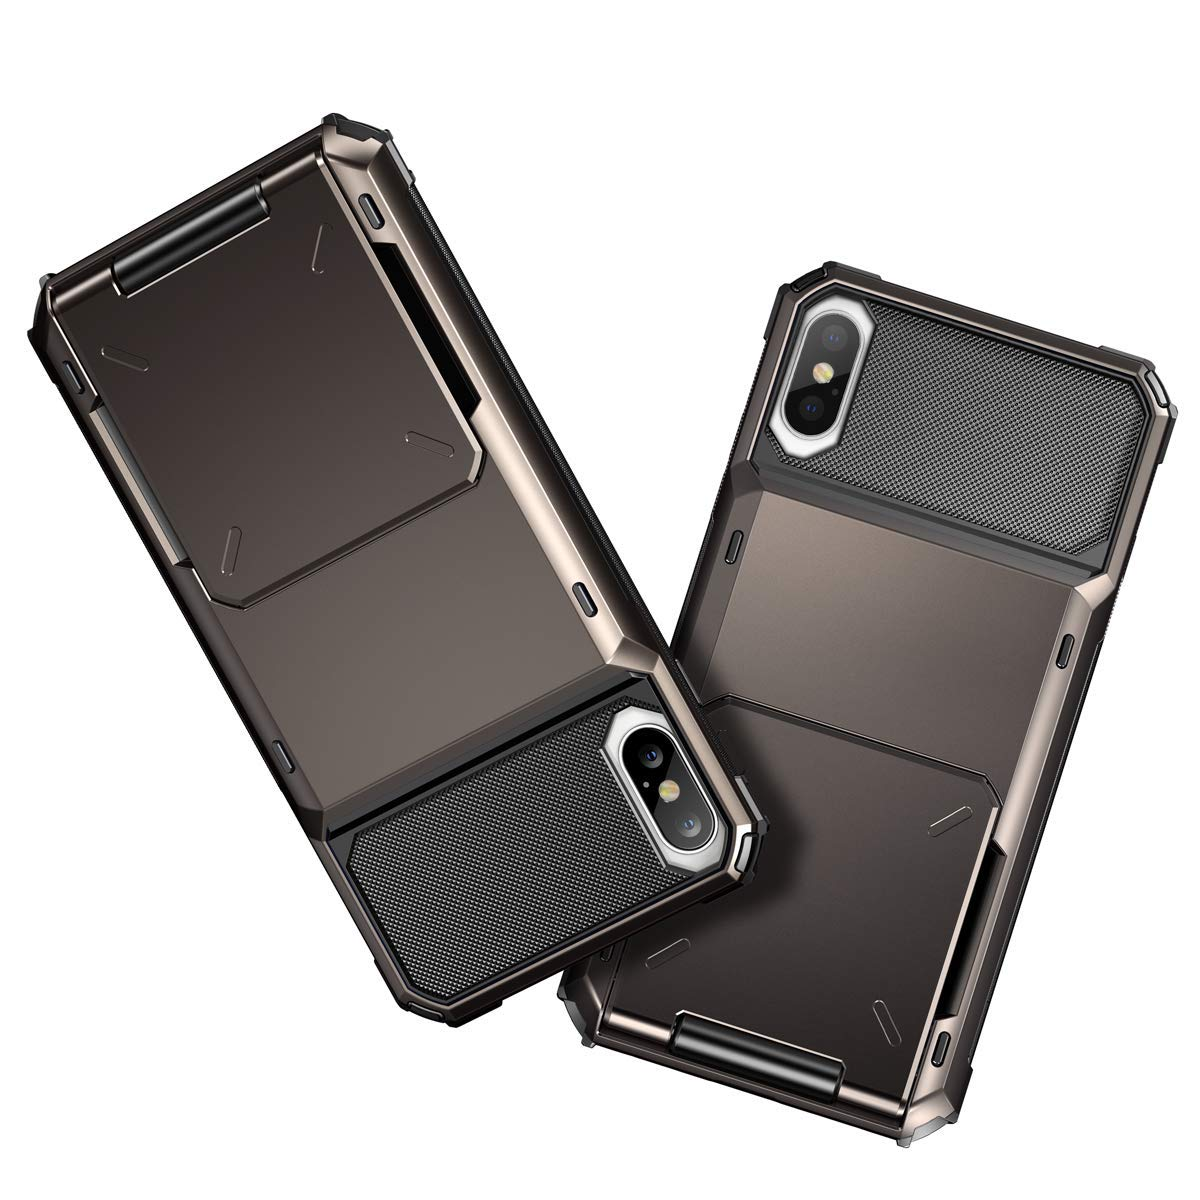 Coolden for iPhone XS Max Case with Card Slot Holder Case for iPhone XS Max Wallet Case Cover Shockproof Case Heavy Duty Hard Back Phone Case Protective Case Cover for iPhone XS Max Gun Color